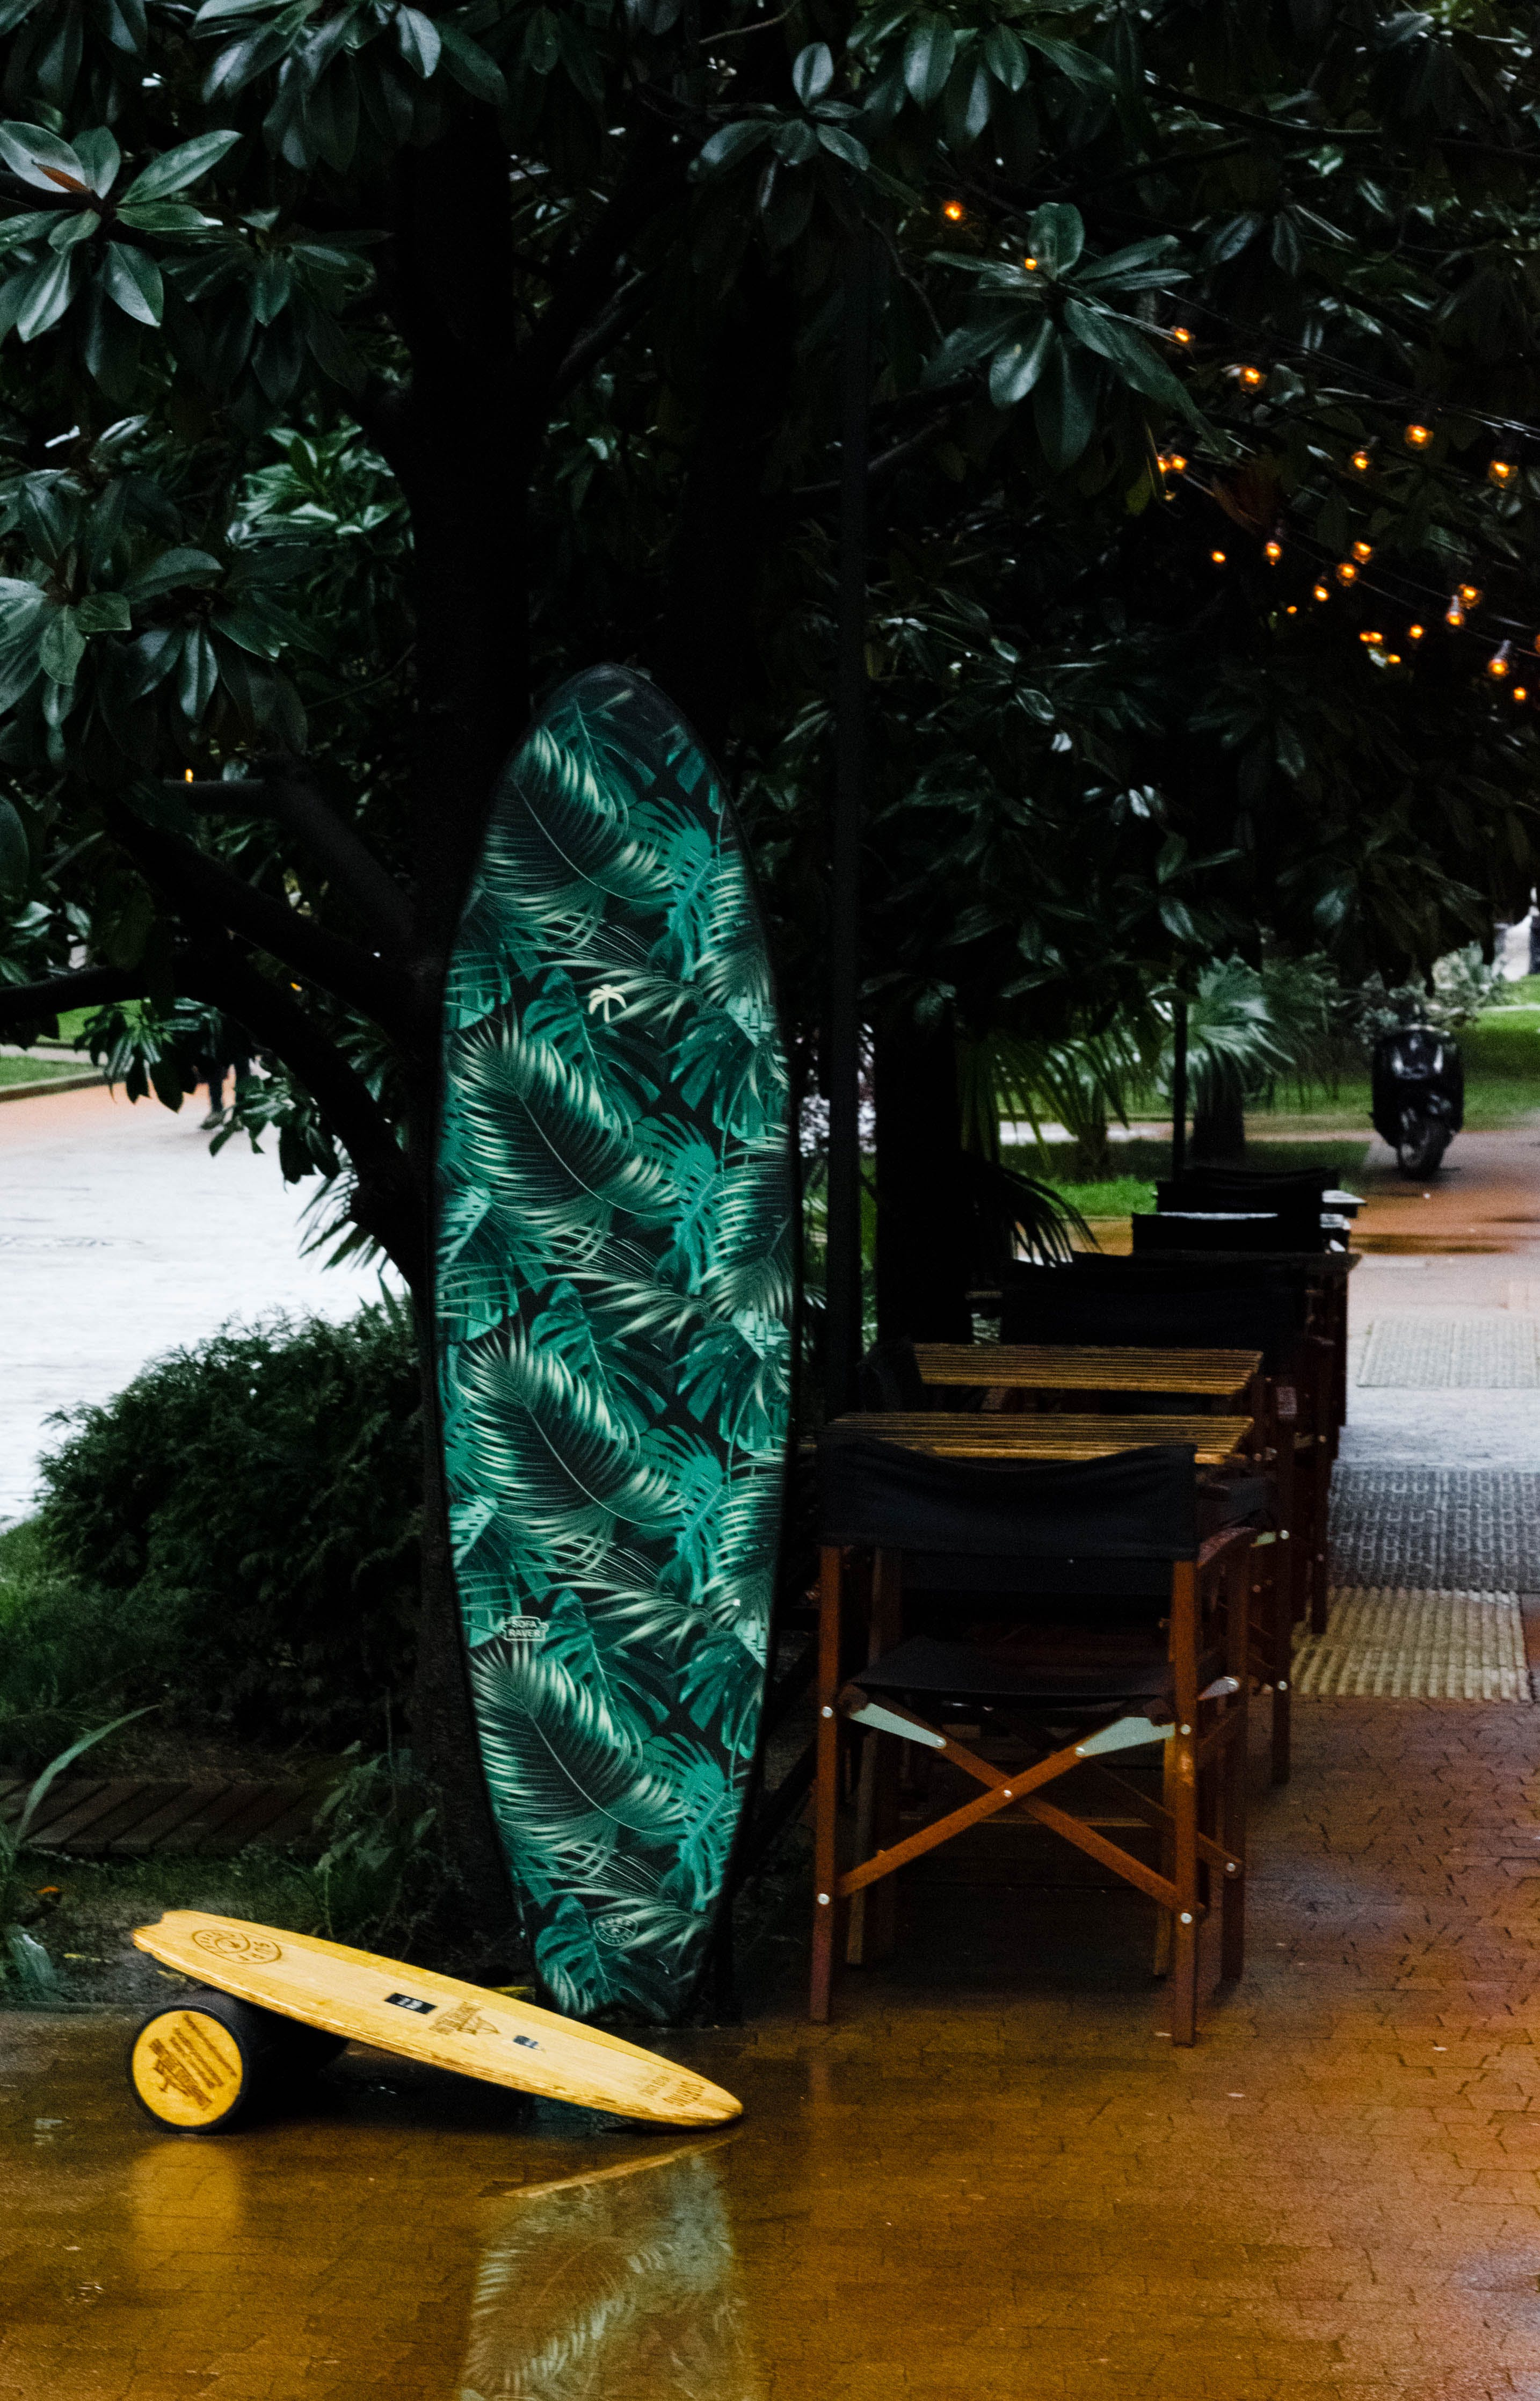 Green, White, and Black Leaf Print Surfboard Near Tree